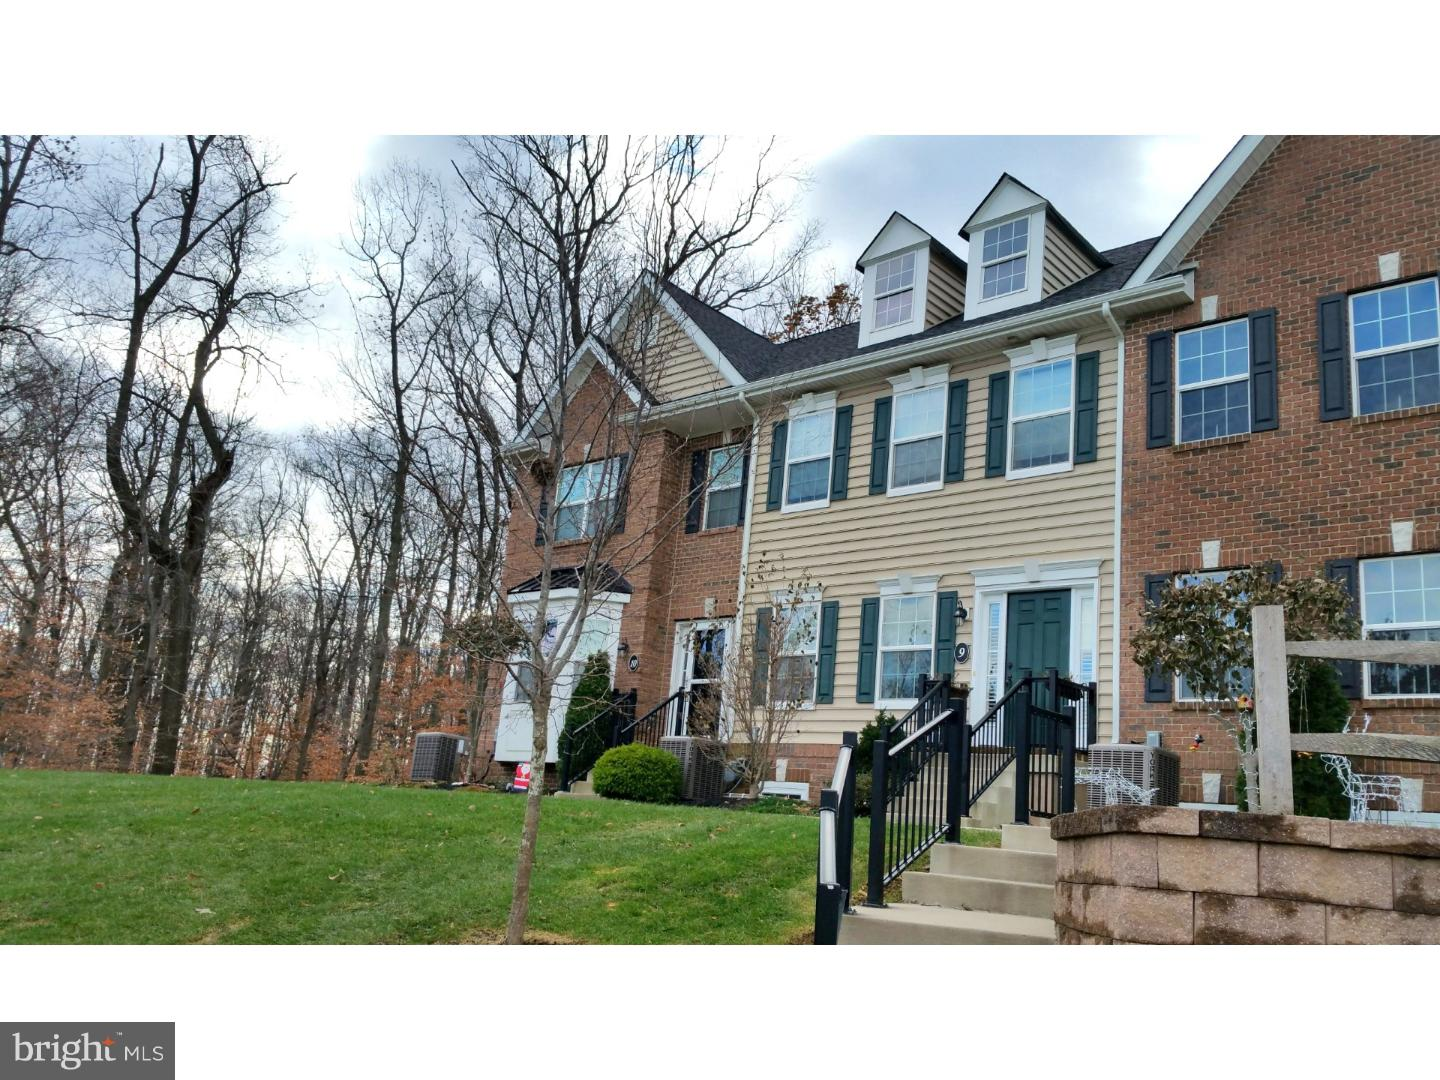 Property for Rent at 3832 WILLIAM DAVES RD #9 Doylestown, Pennsylvania 18902 United States